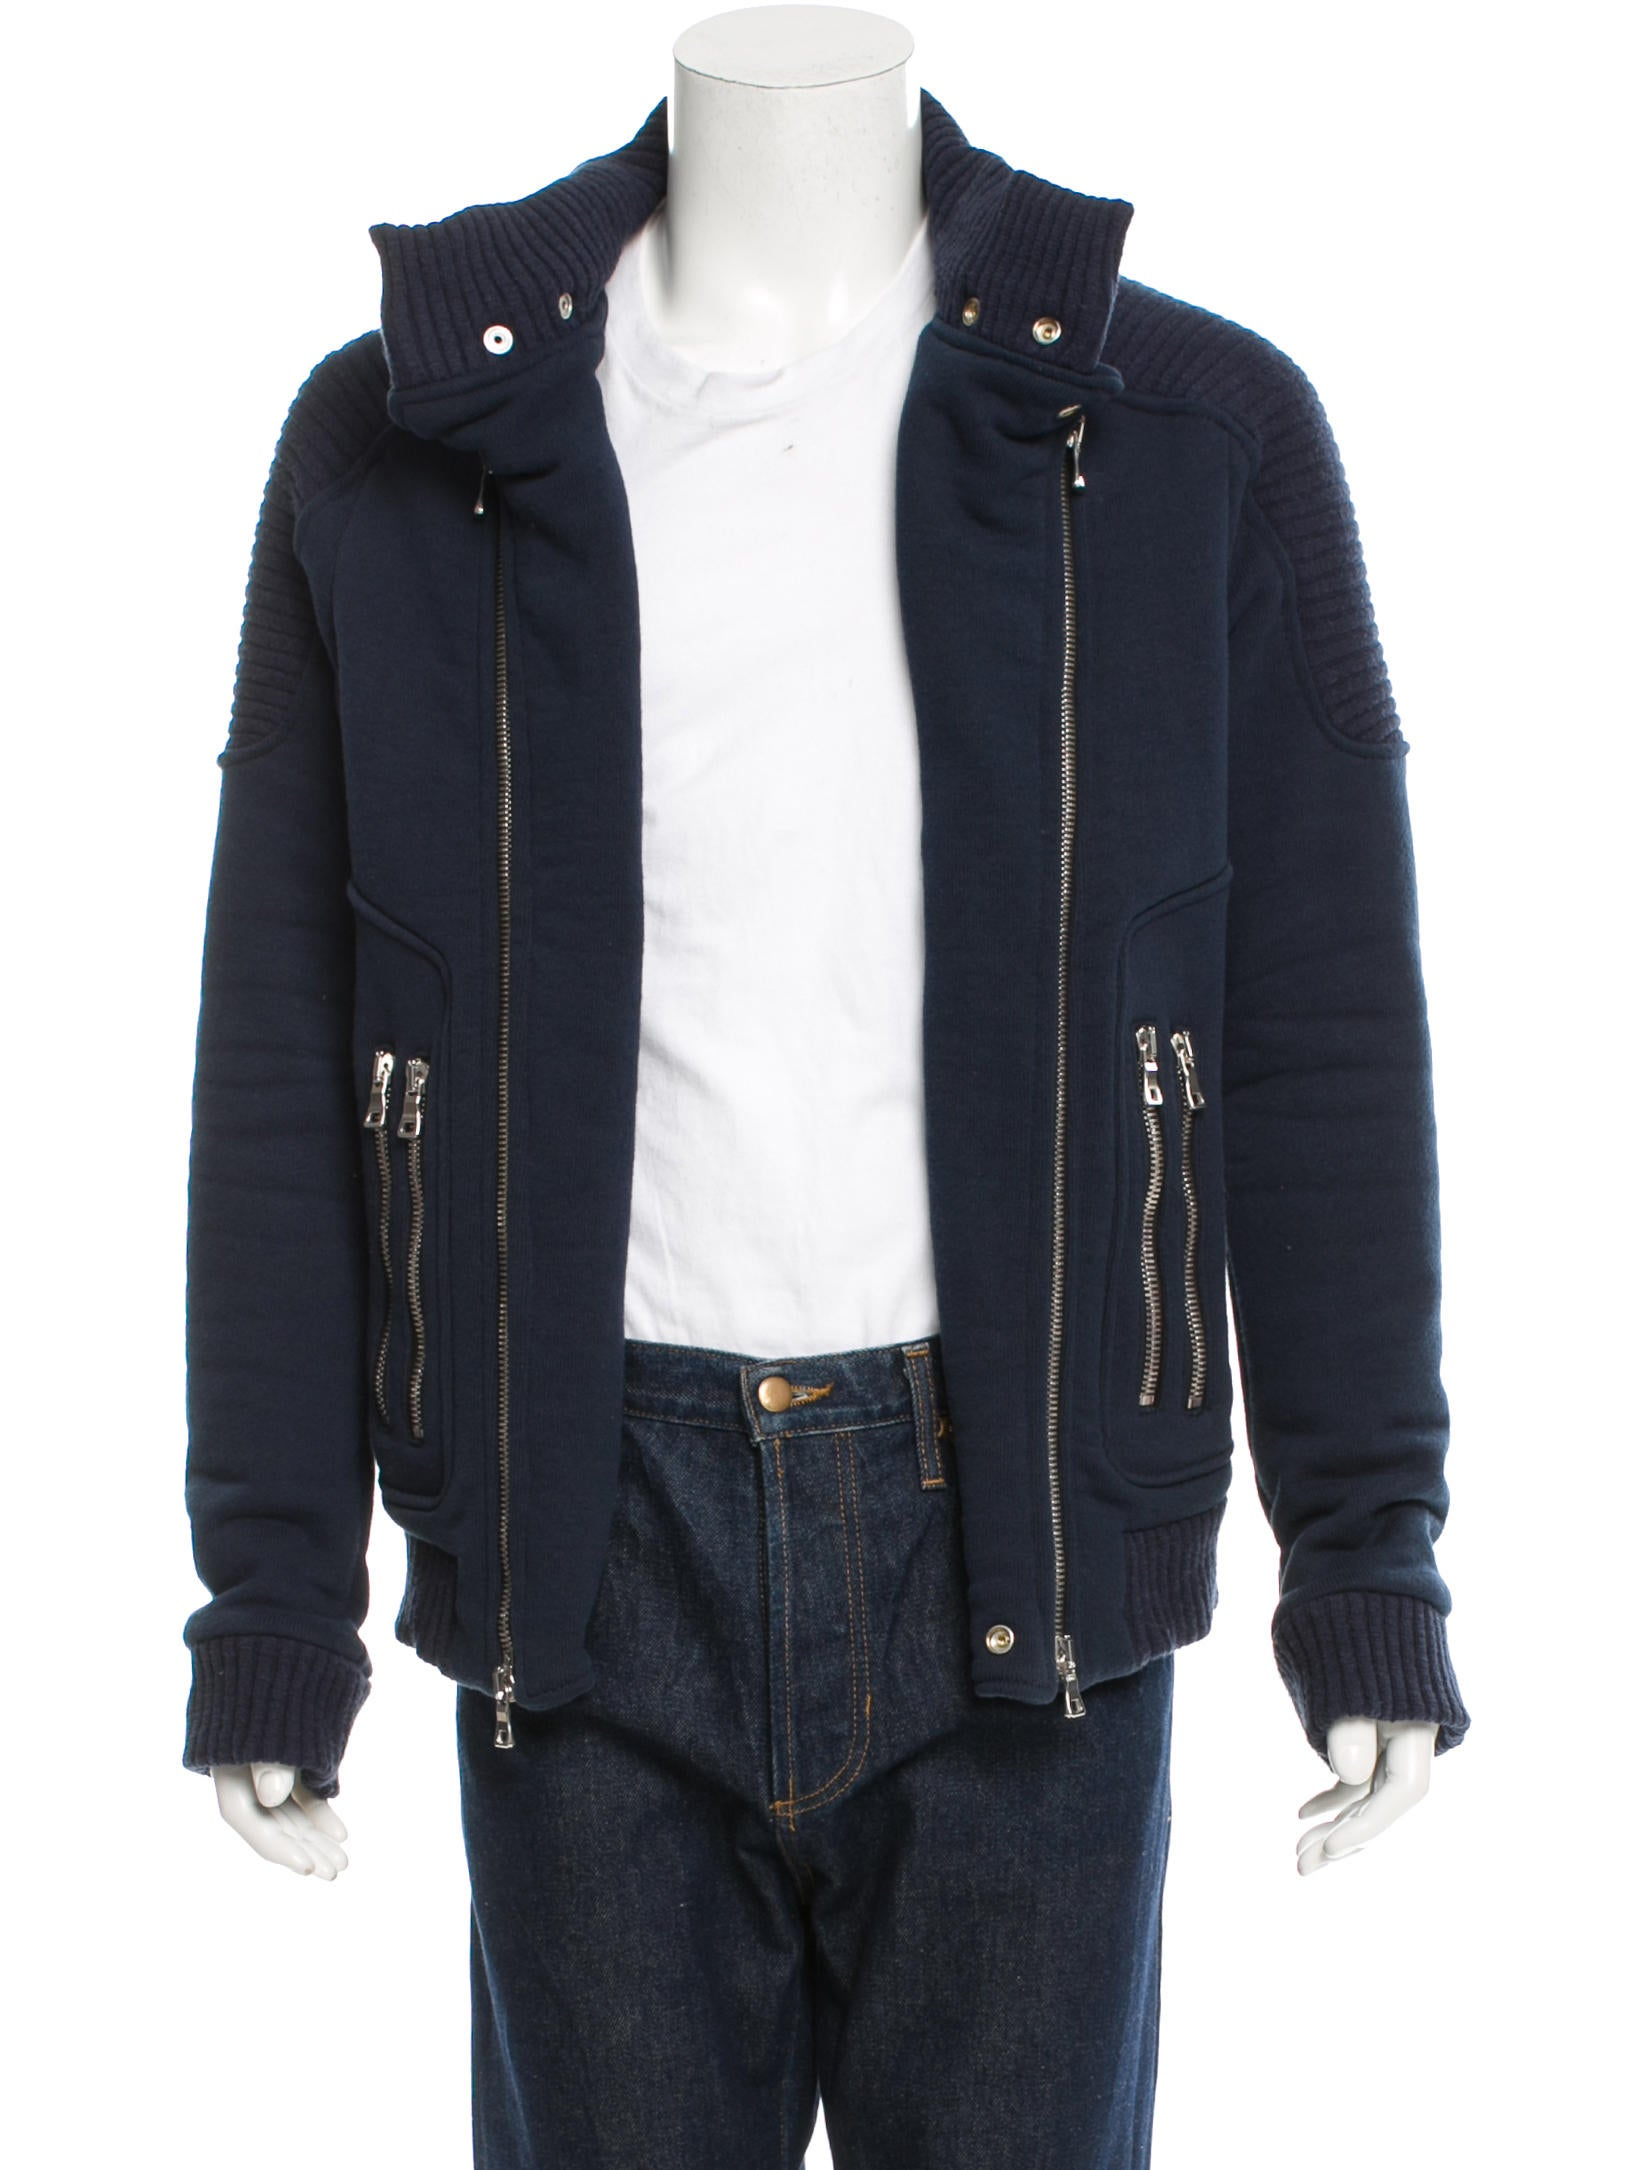 Balmain Moto Knit Jacket - Clothing - BAM22749 | The RealReal